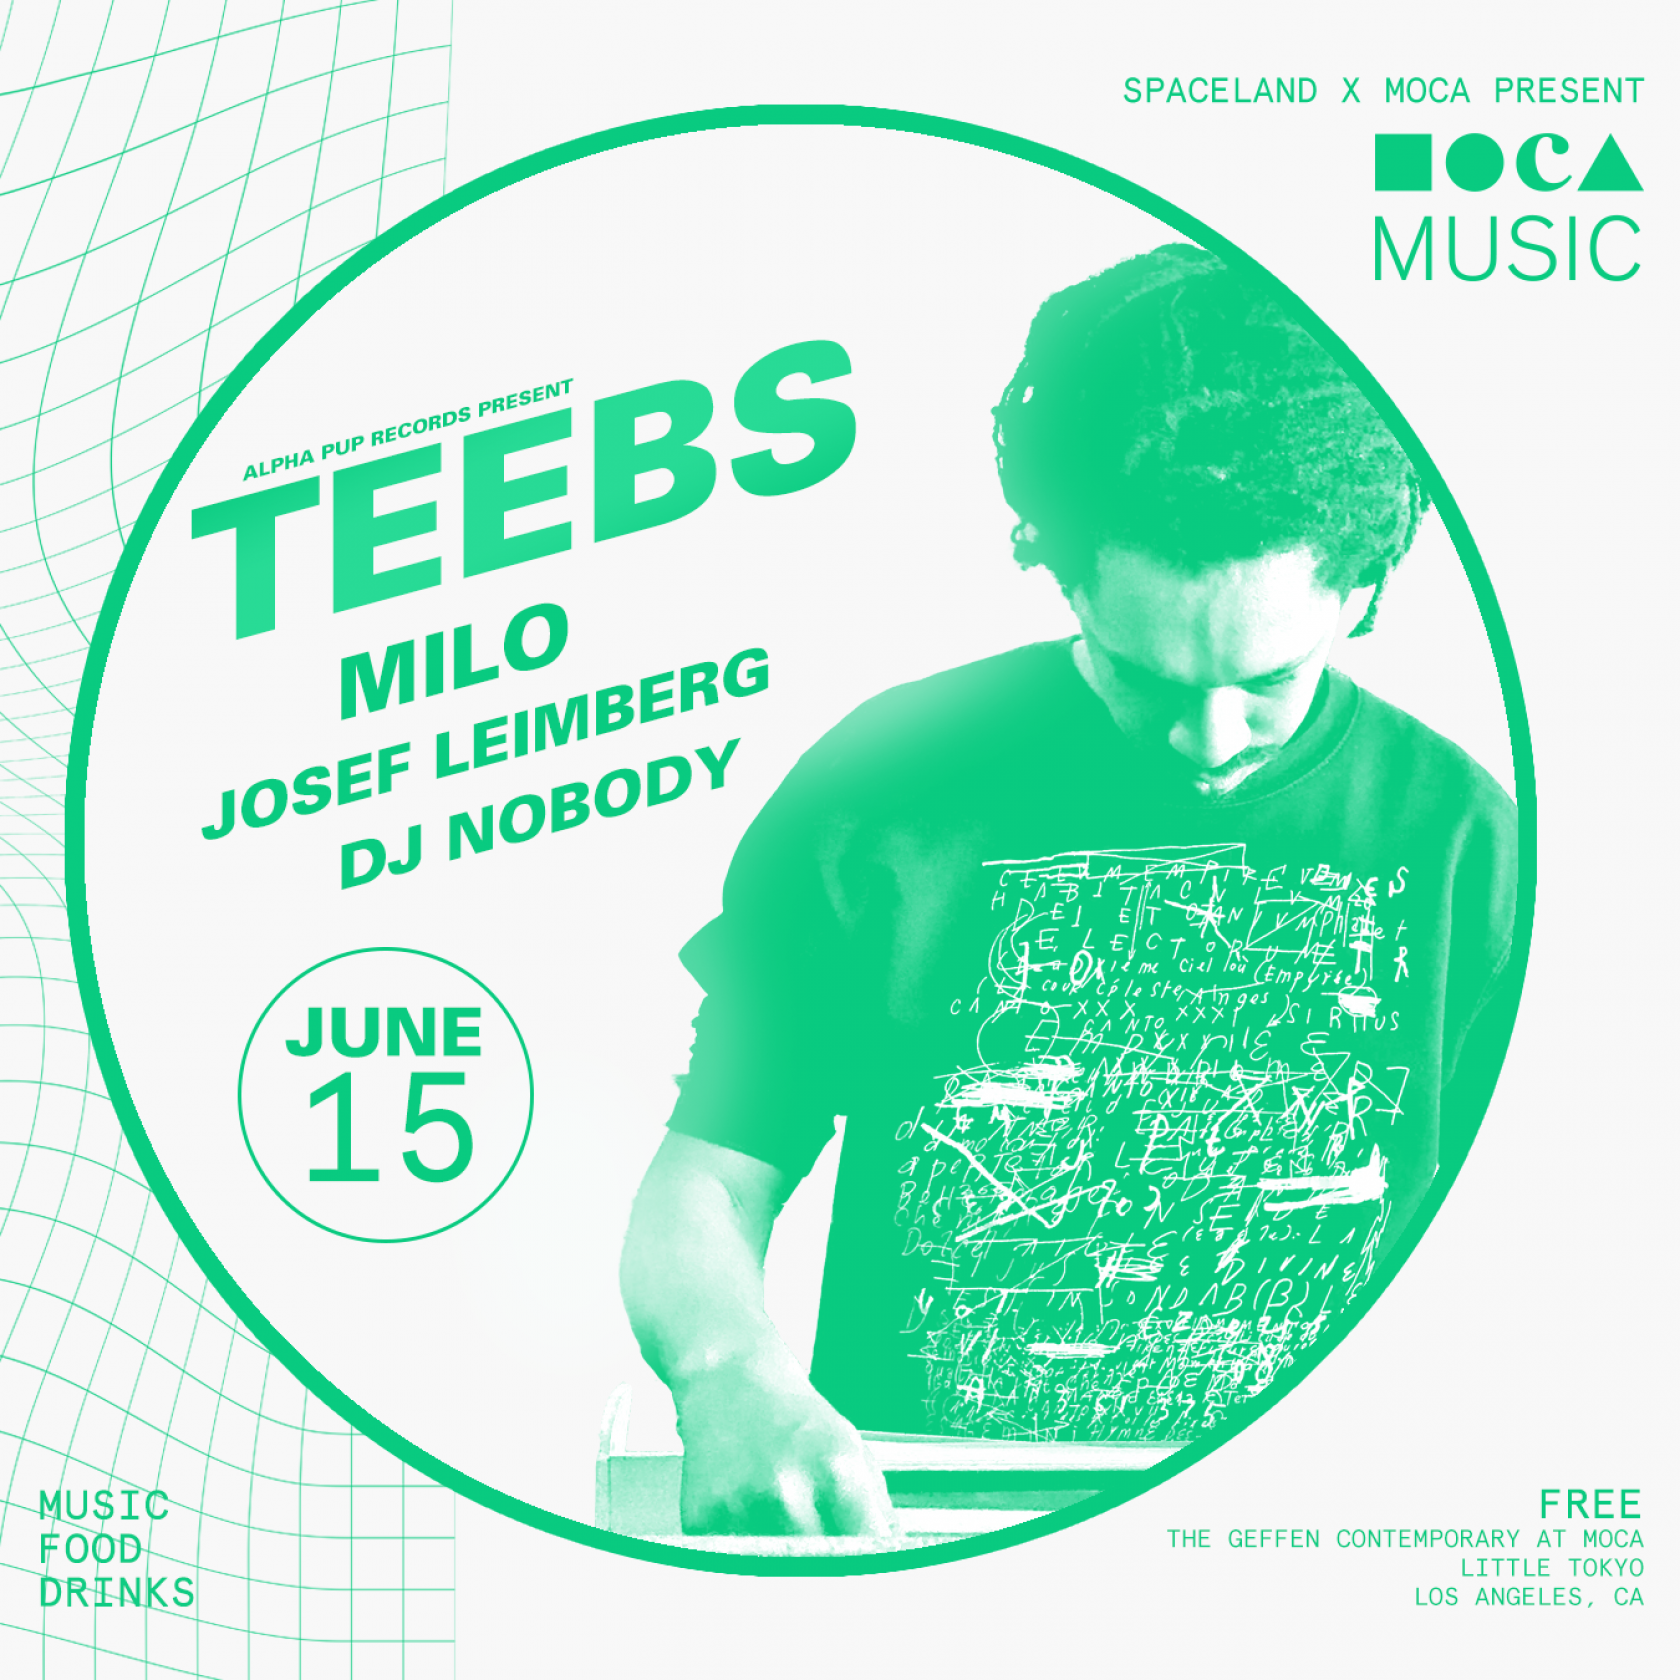 MOCA Music: Teebs, Milo, Josef Leimberg, and DJ Nobody